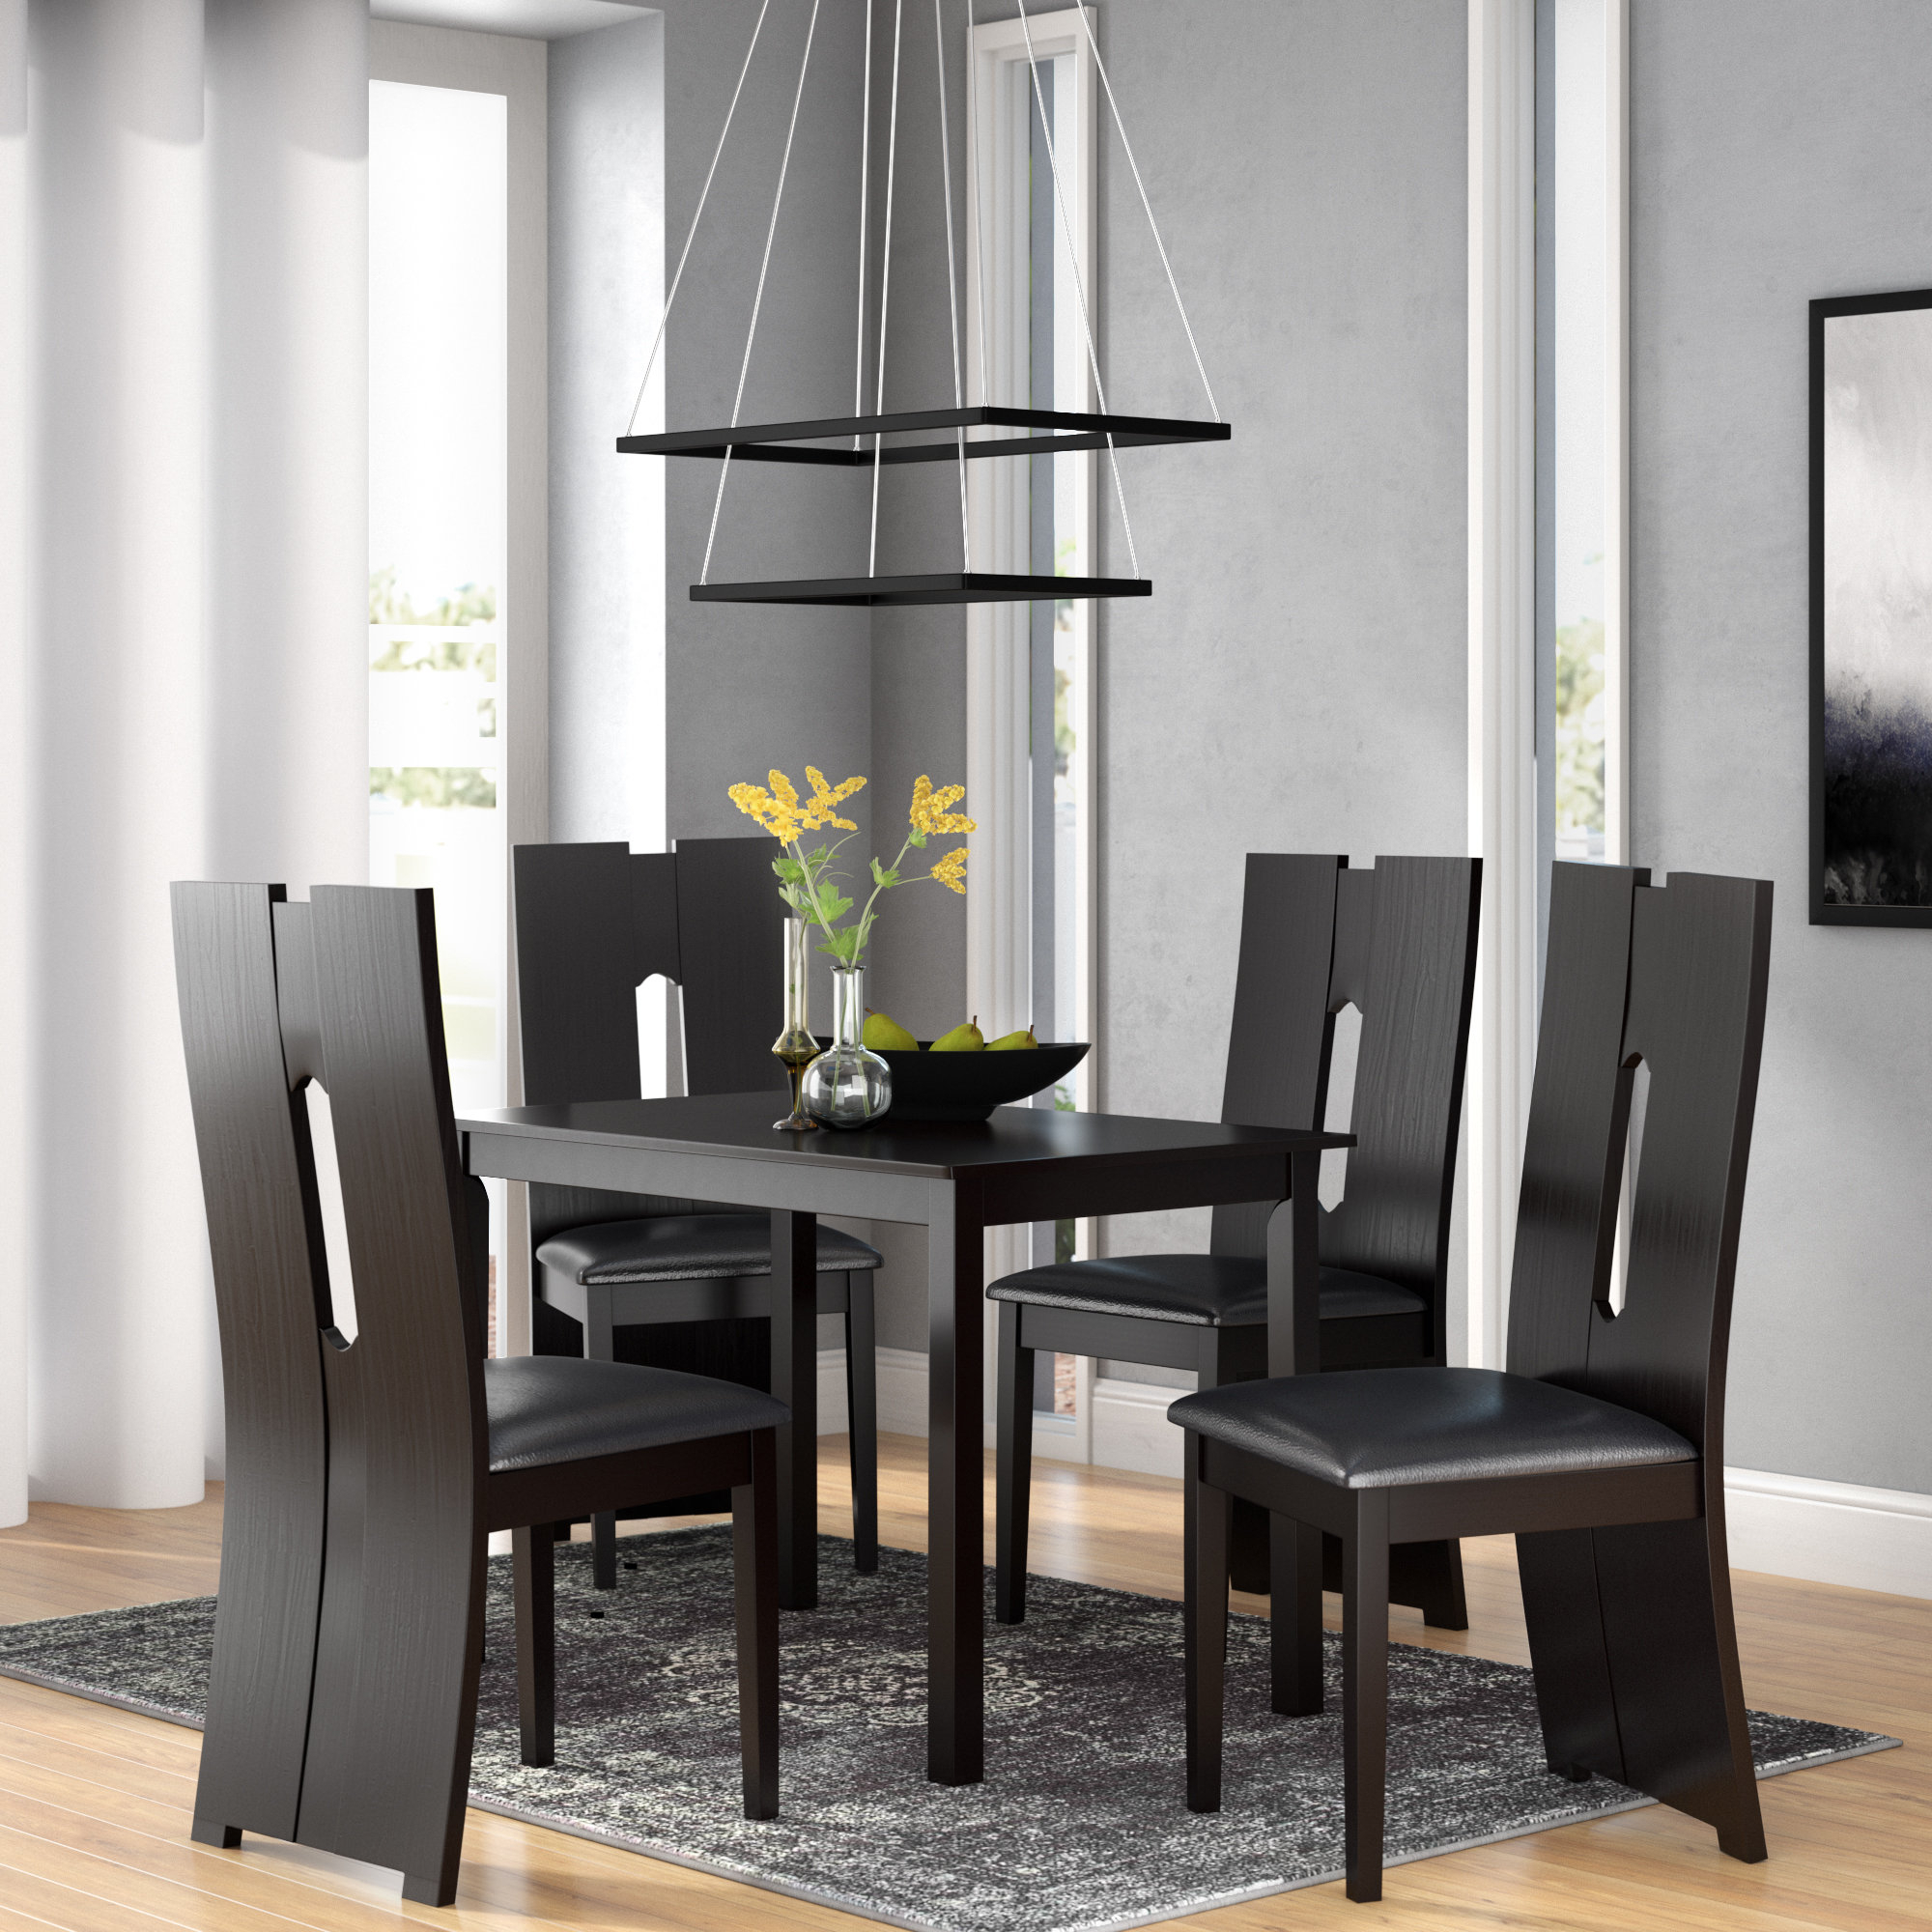 5 Piece Breakfast Nook Dining Sets Pertaining To 2017 Onsted Modern And Contemporary 5 Piece Breakfast Nook Dining Set (View 5 of 20)